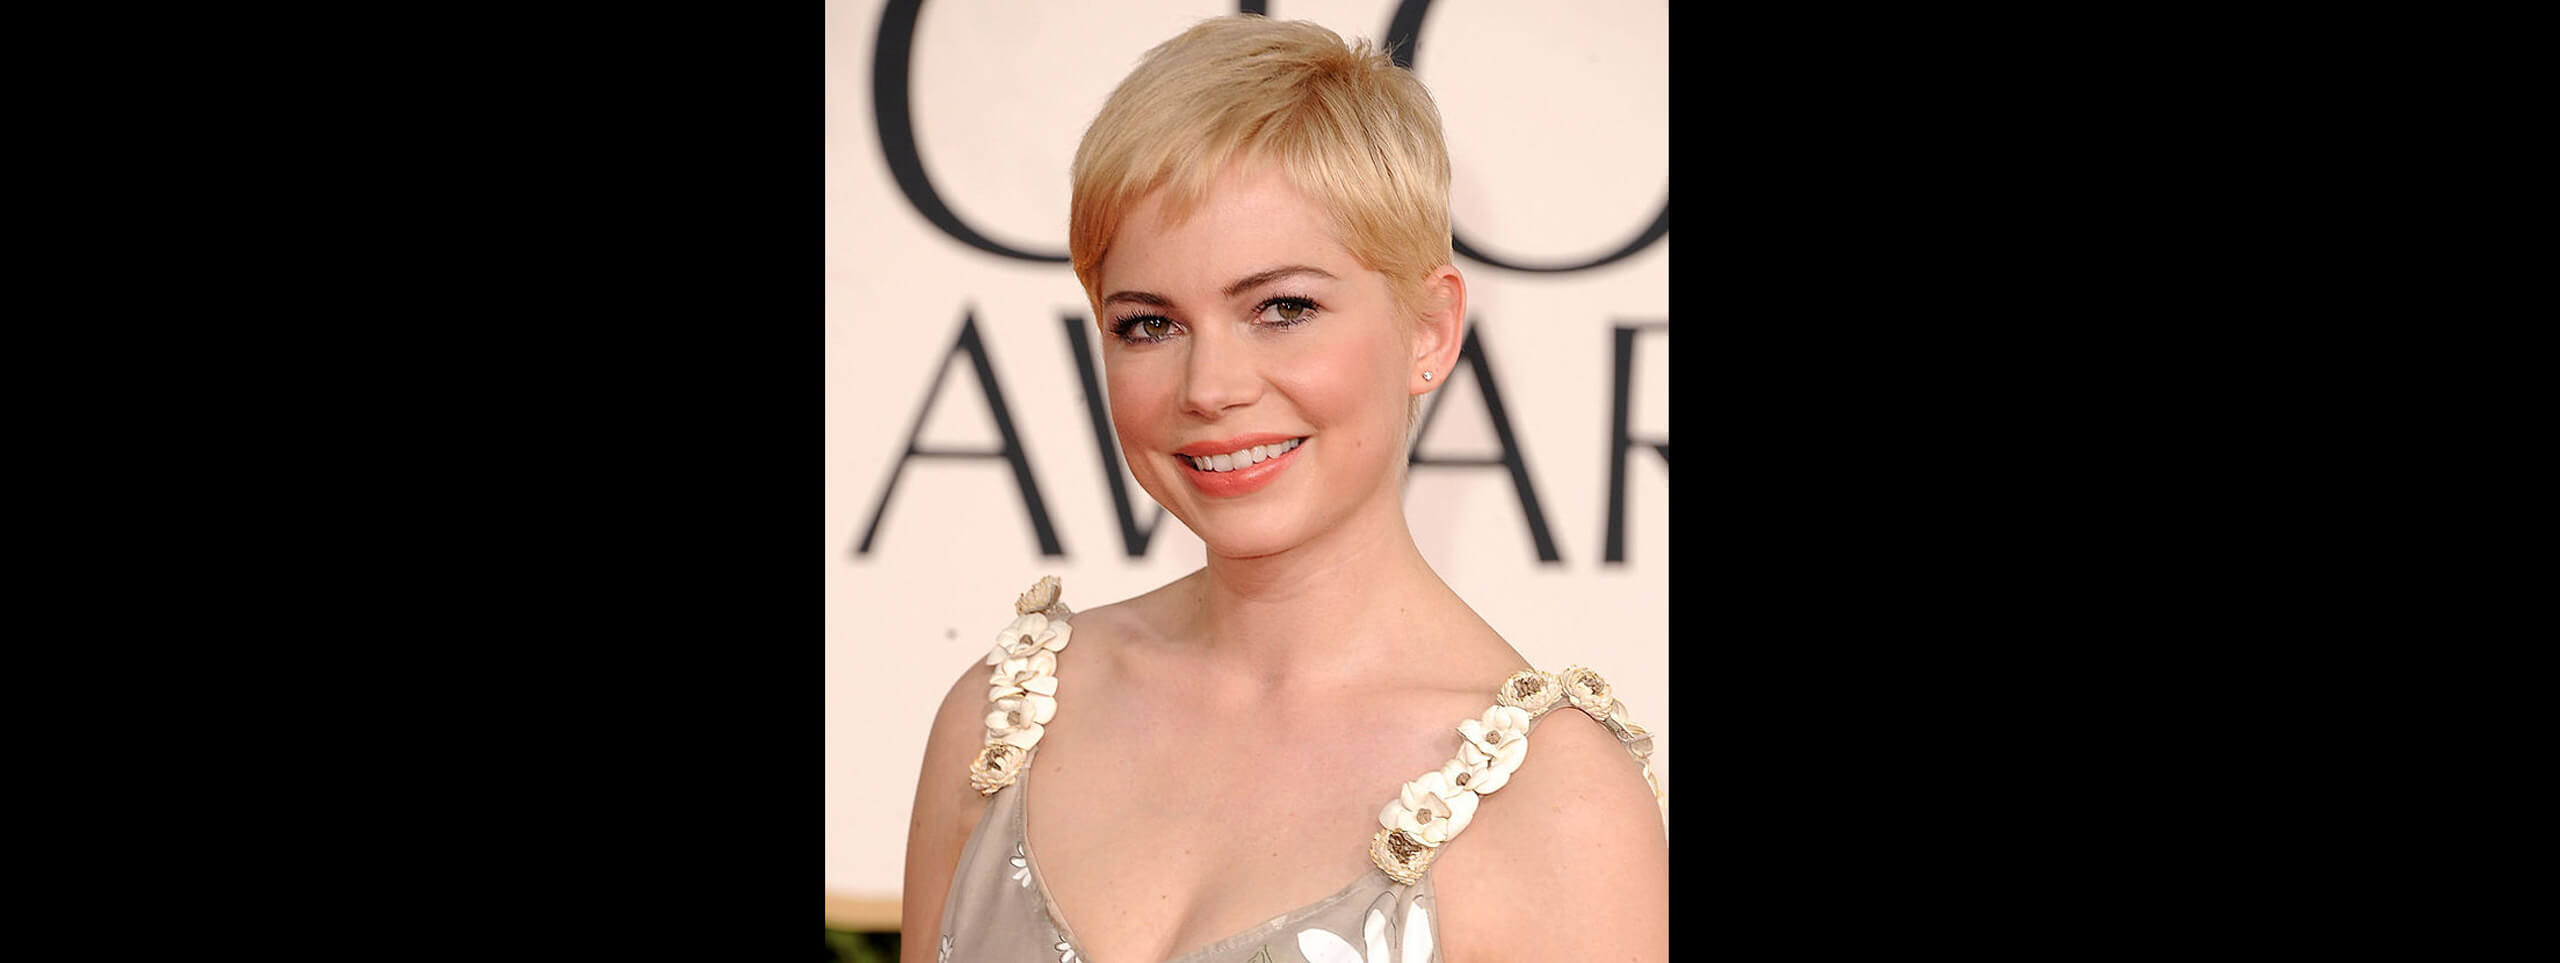 short-hair-hairstyle-michelle-williams